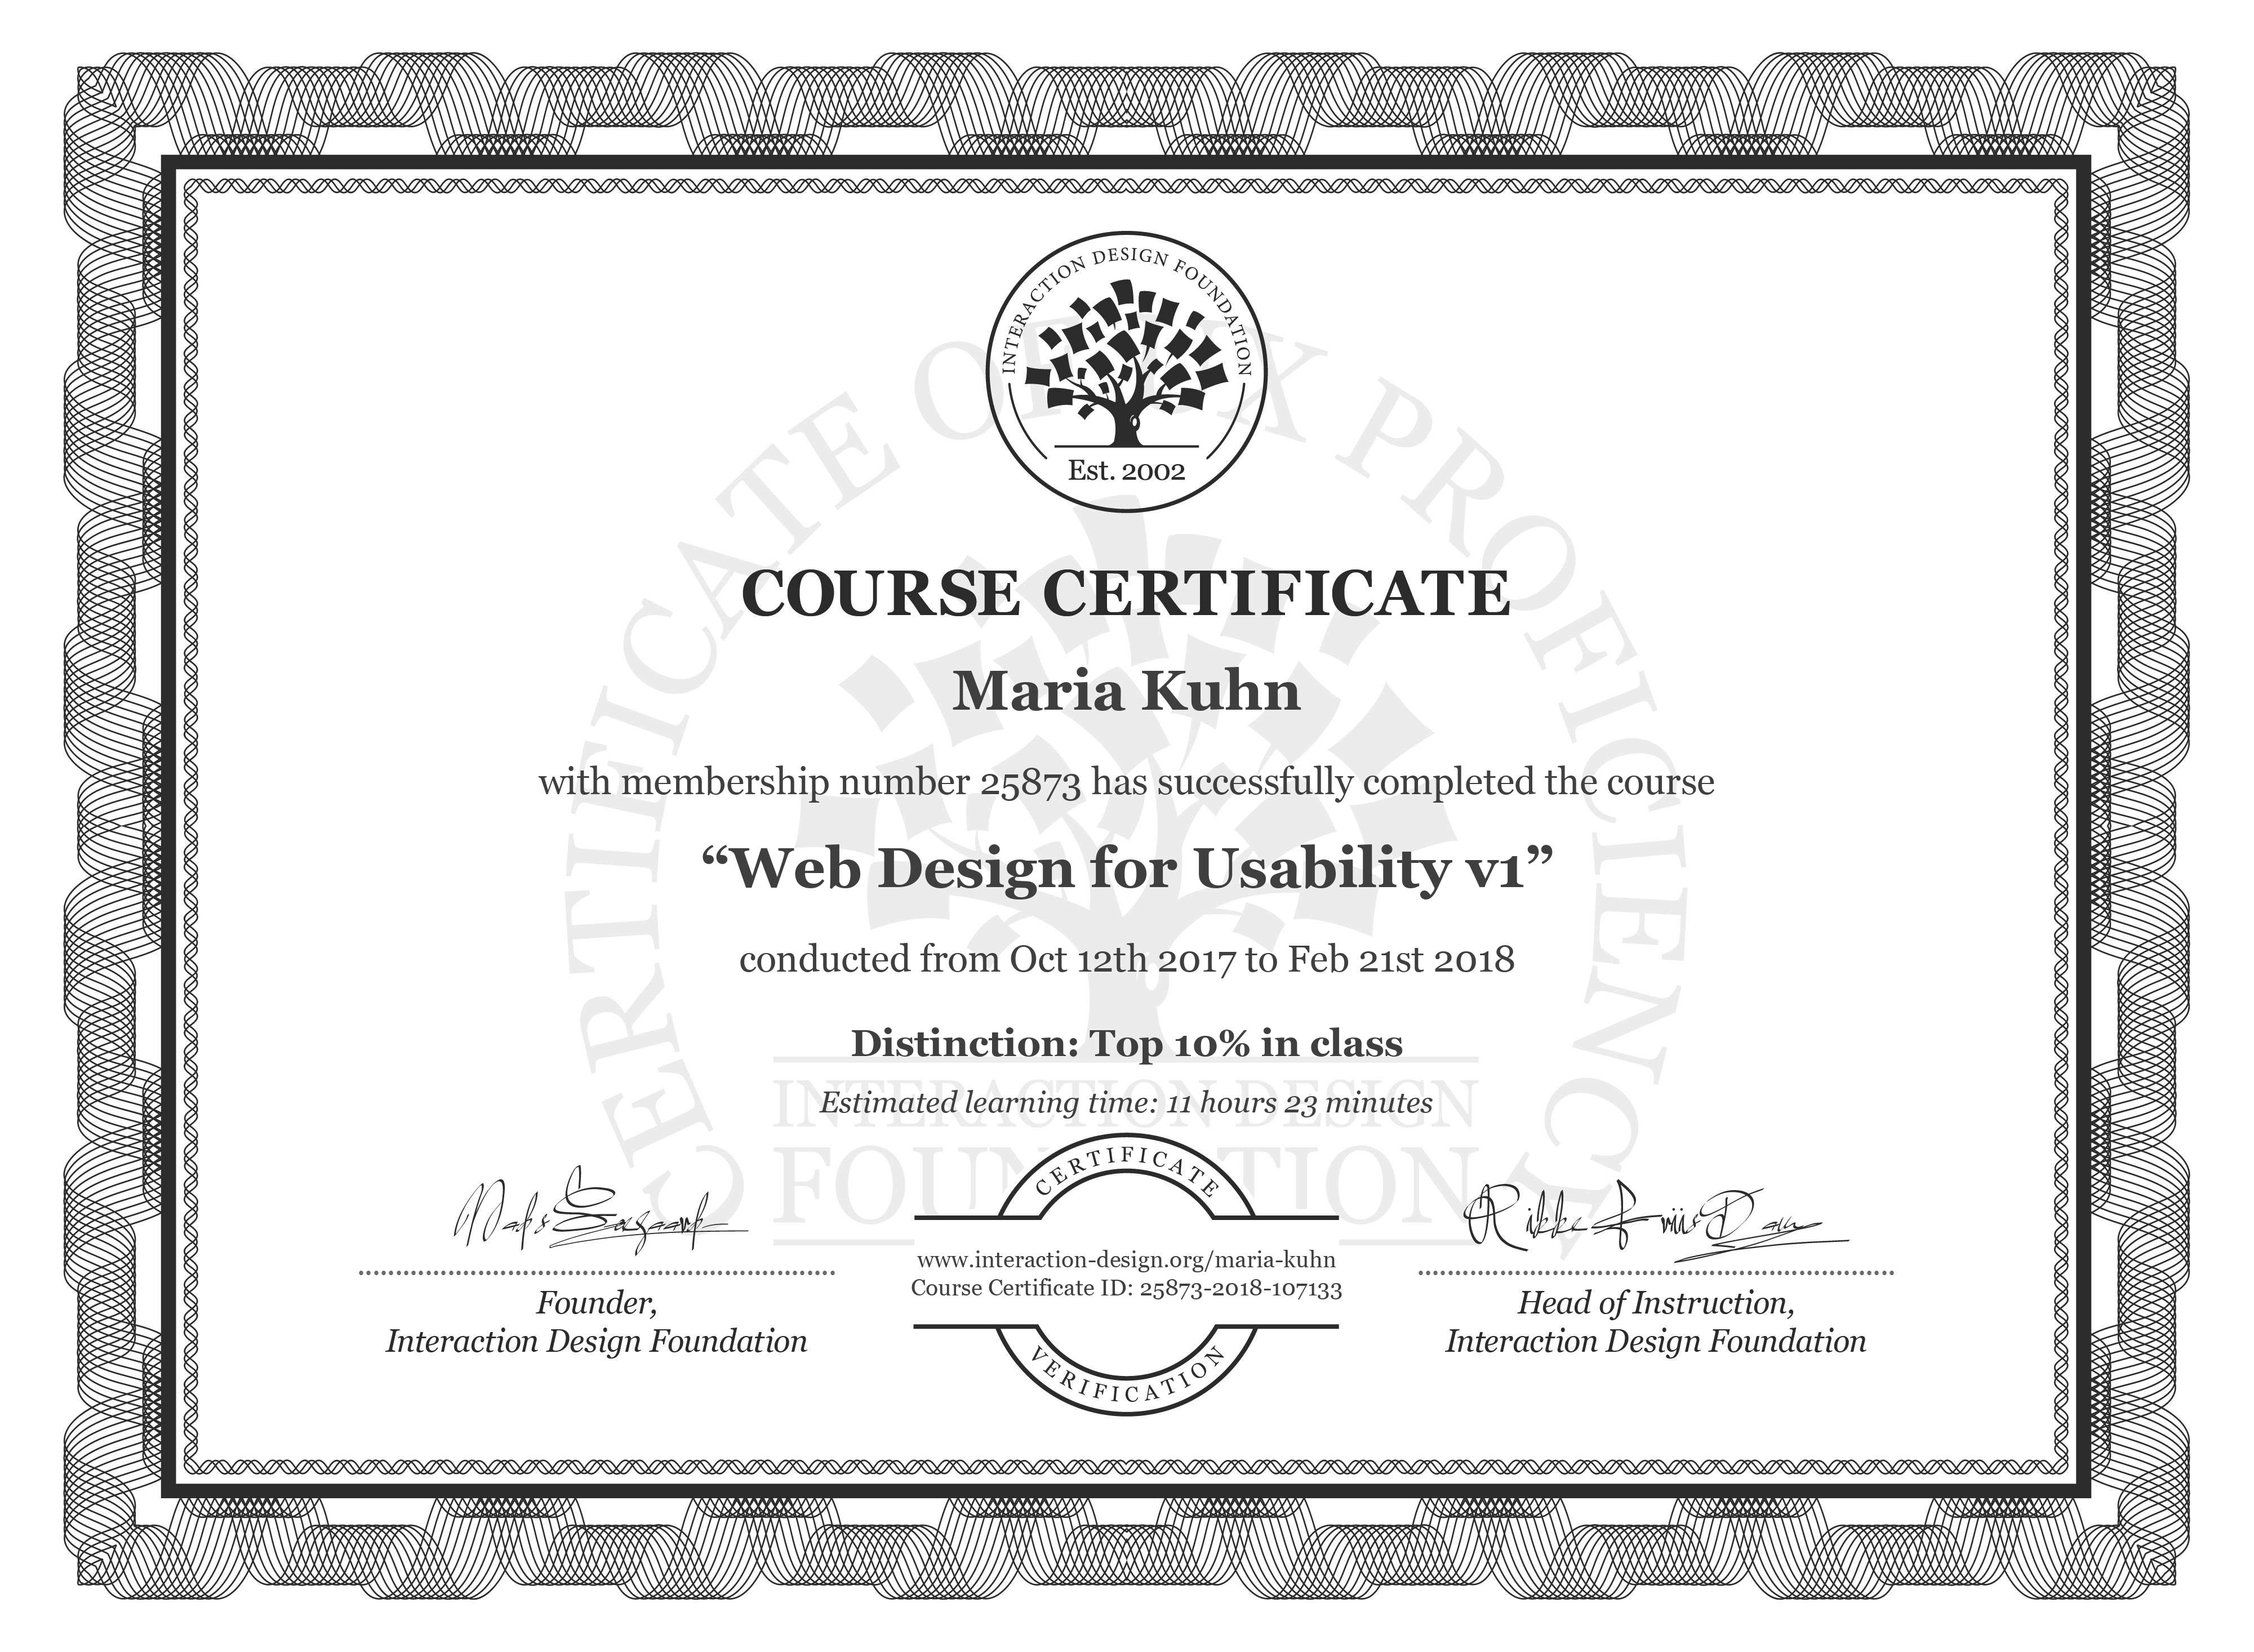 Maria Kuhn: Course Certificate - Web Design for Usability